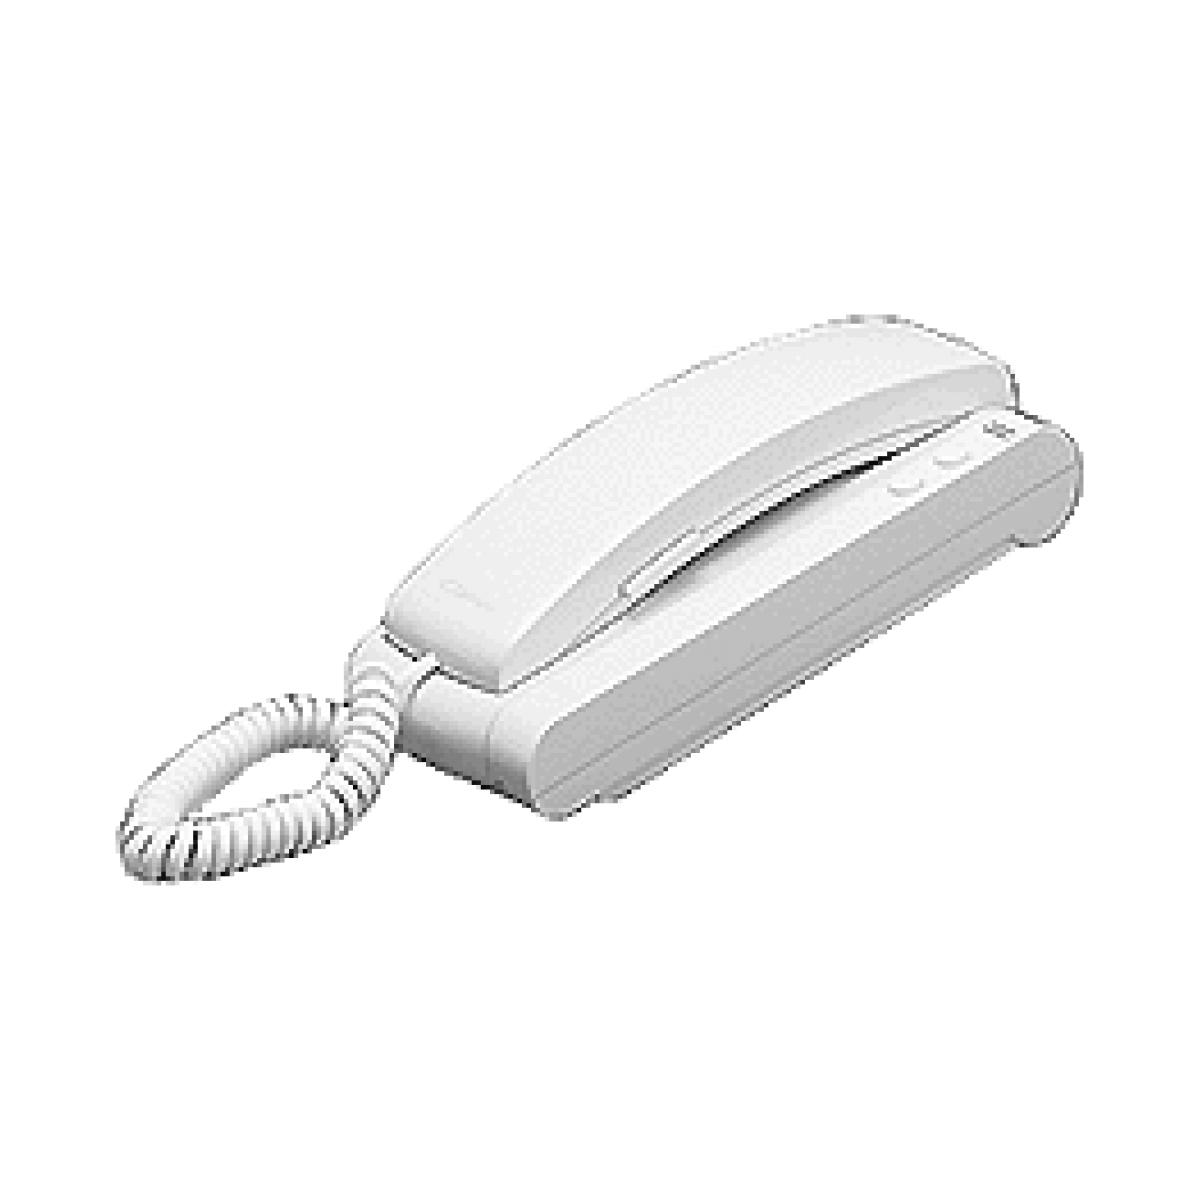 2422W alpha communications™ 2422w comelit cyrex wall handset comelit handset wiring diagram at nearapp.co